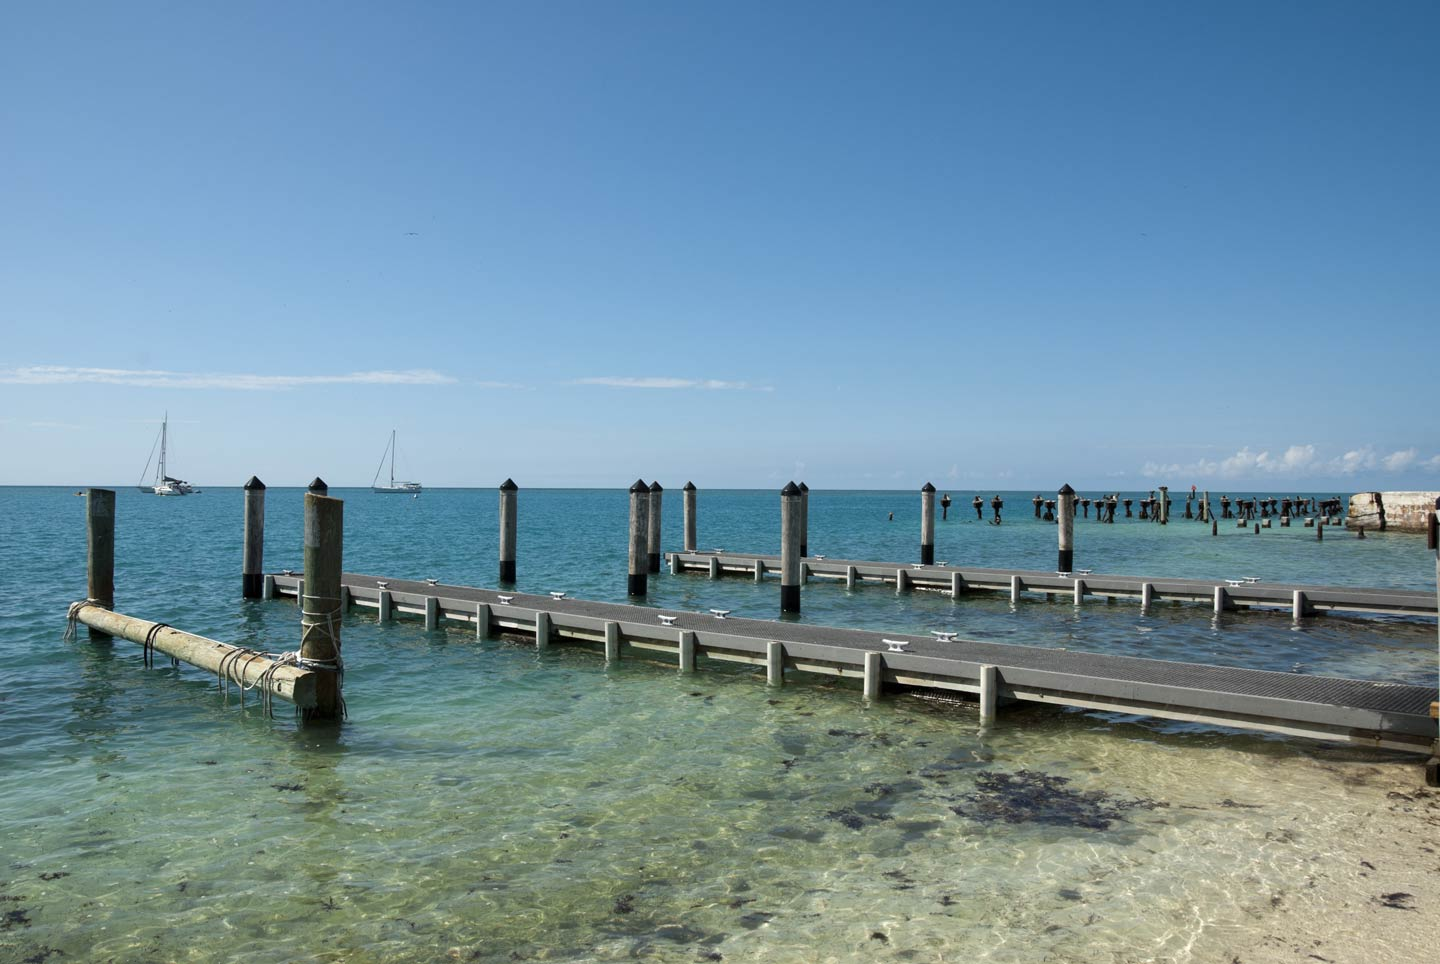 The docks (finger piers) in Dry Tortugas